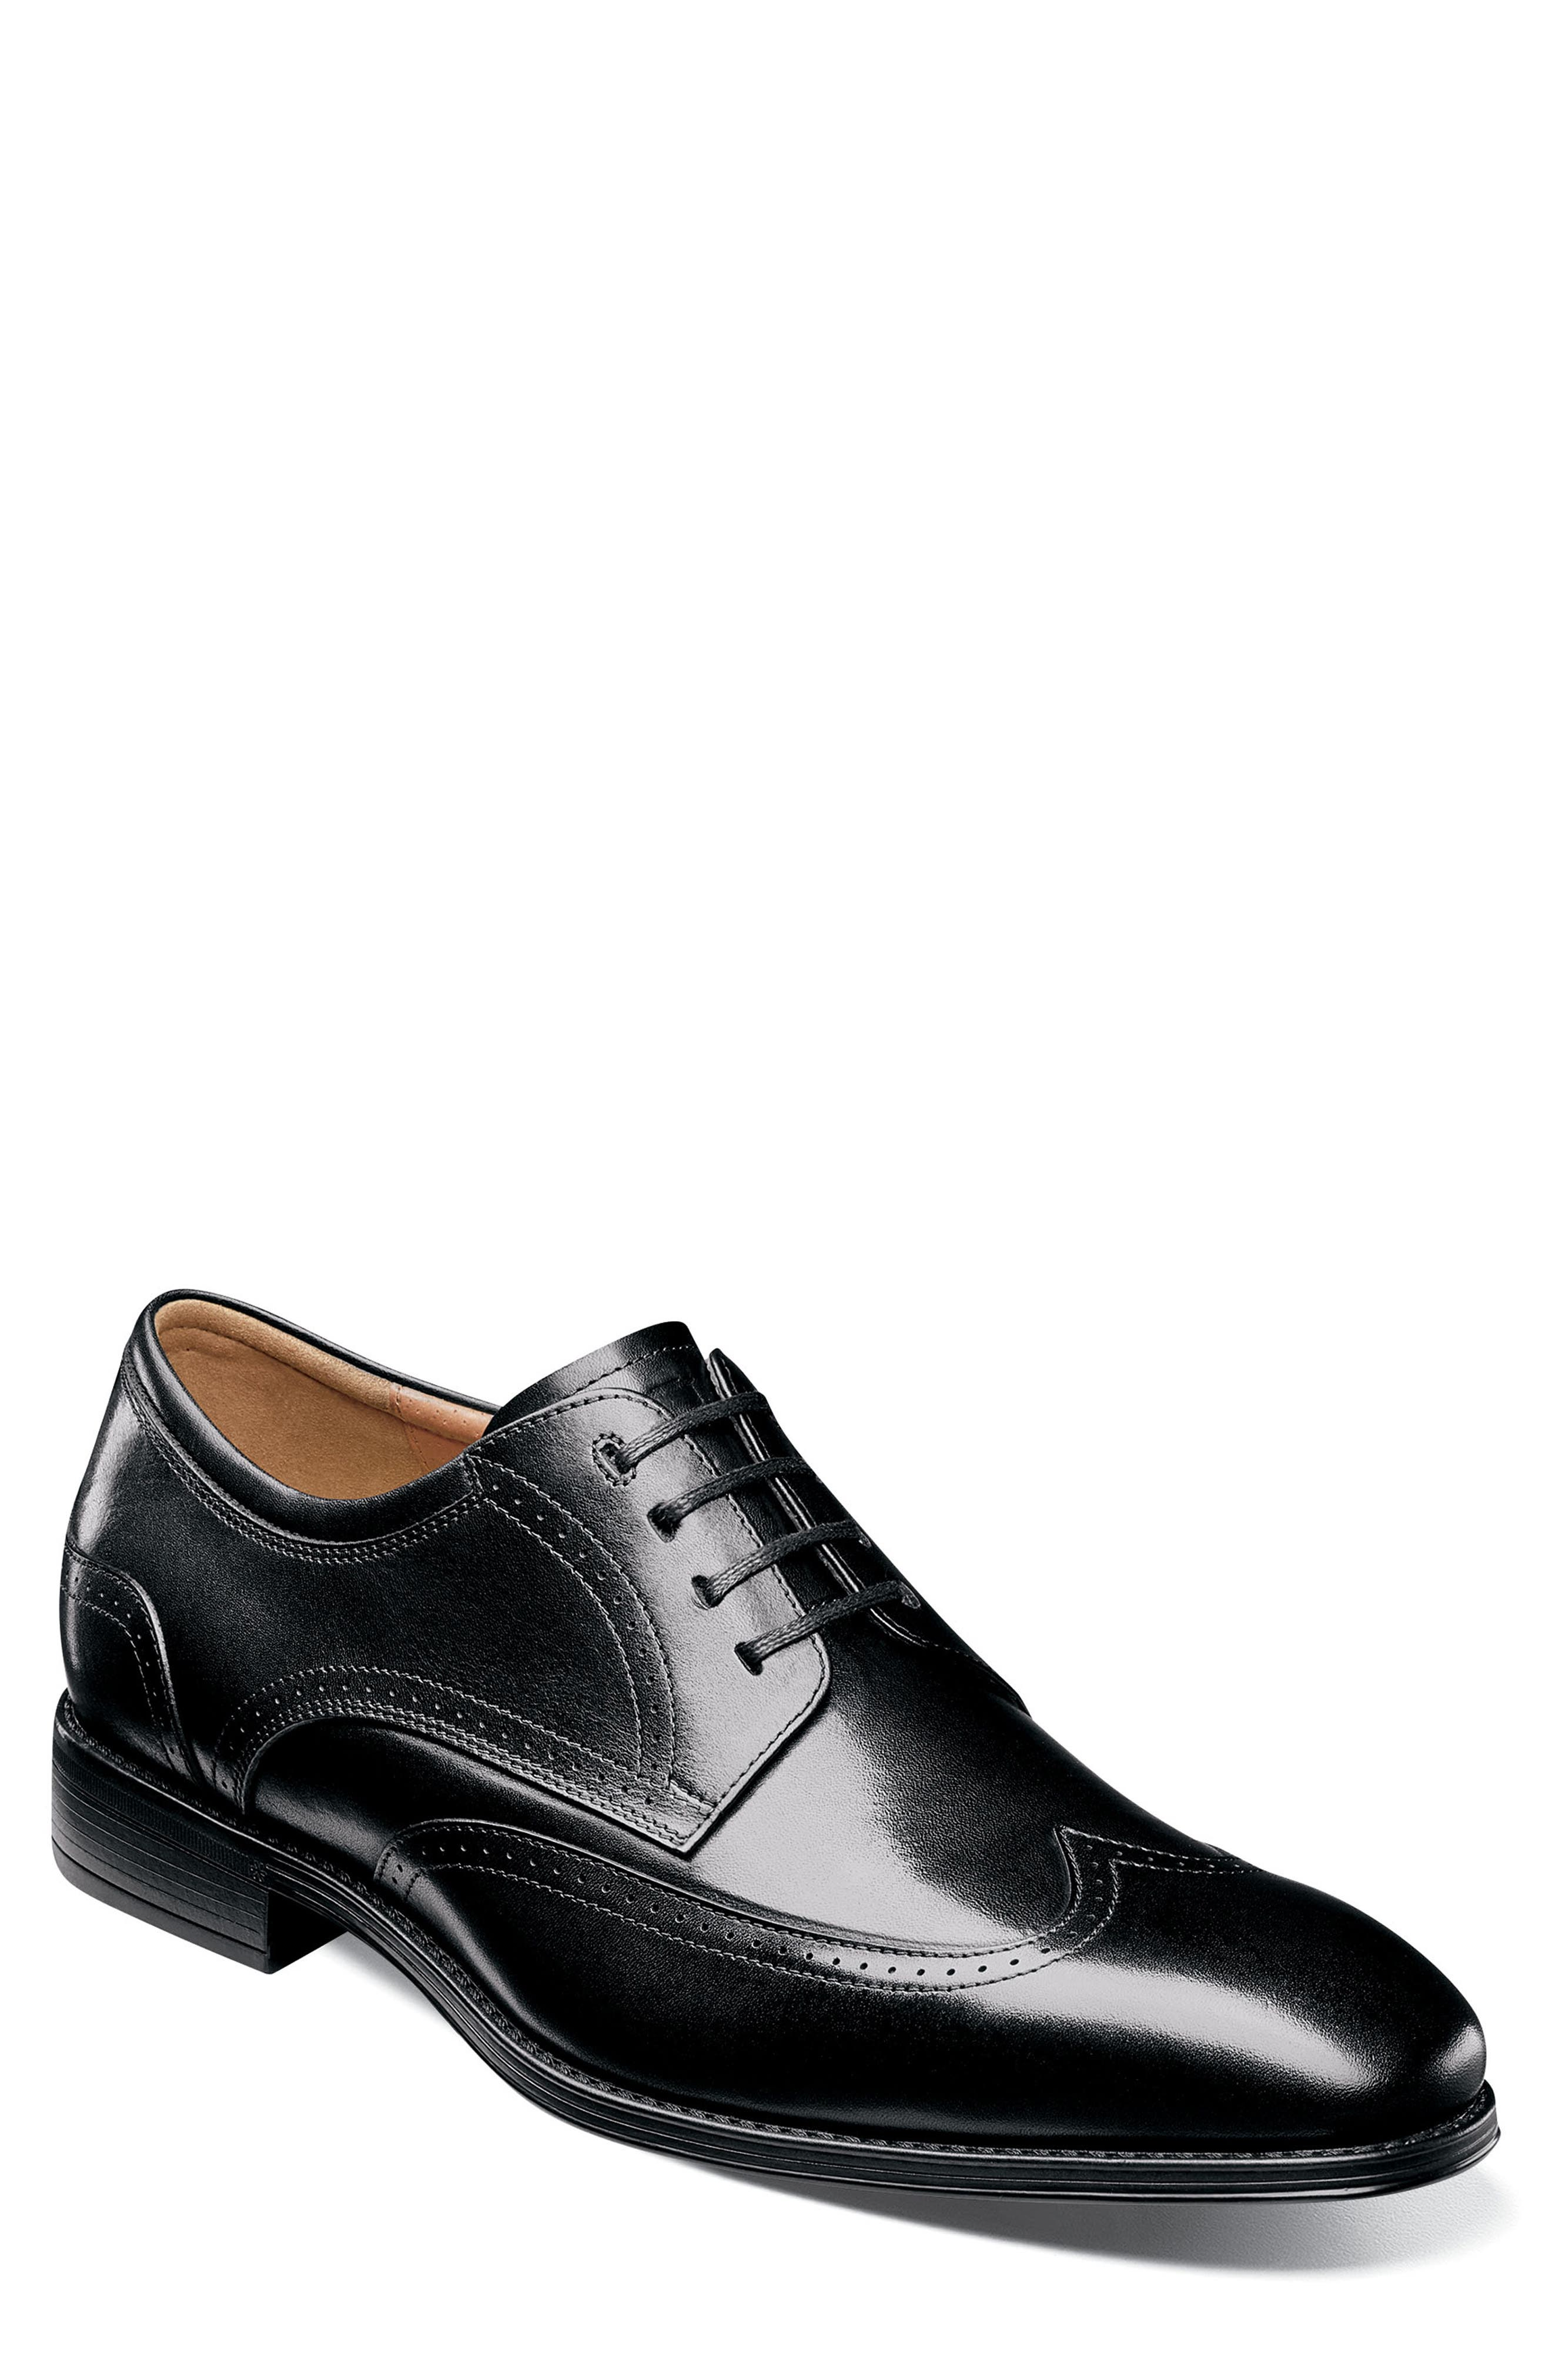 FLORSHEIM, Cardinelli Wingtip, Main thumbnail 1, color, BLACK LEATHER